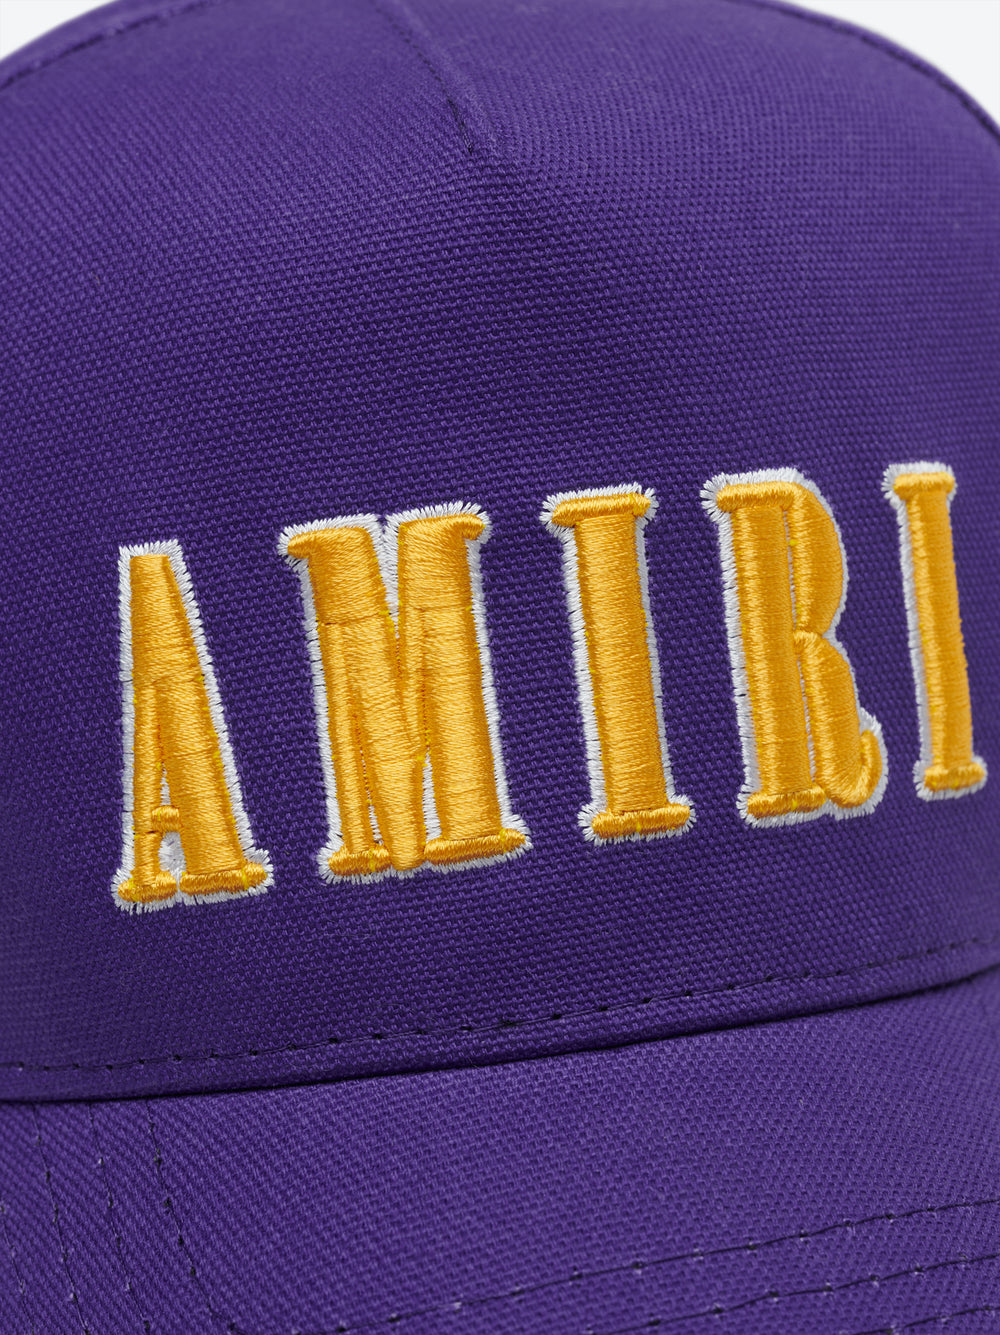 AMIRI EMBROIDERED HAT - Purple